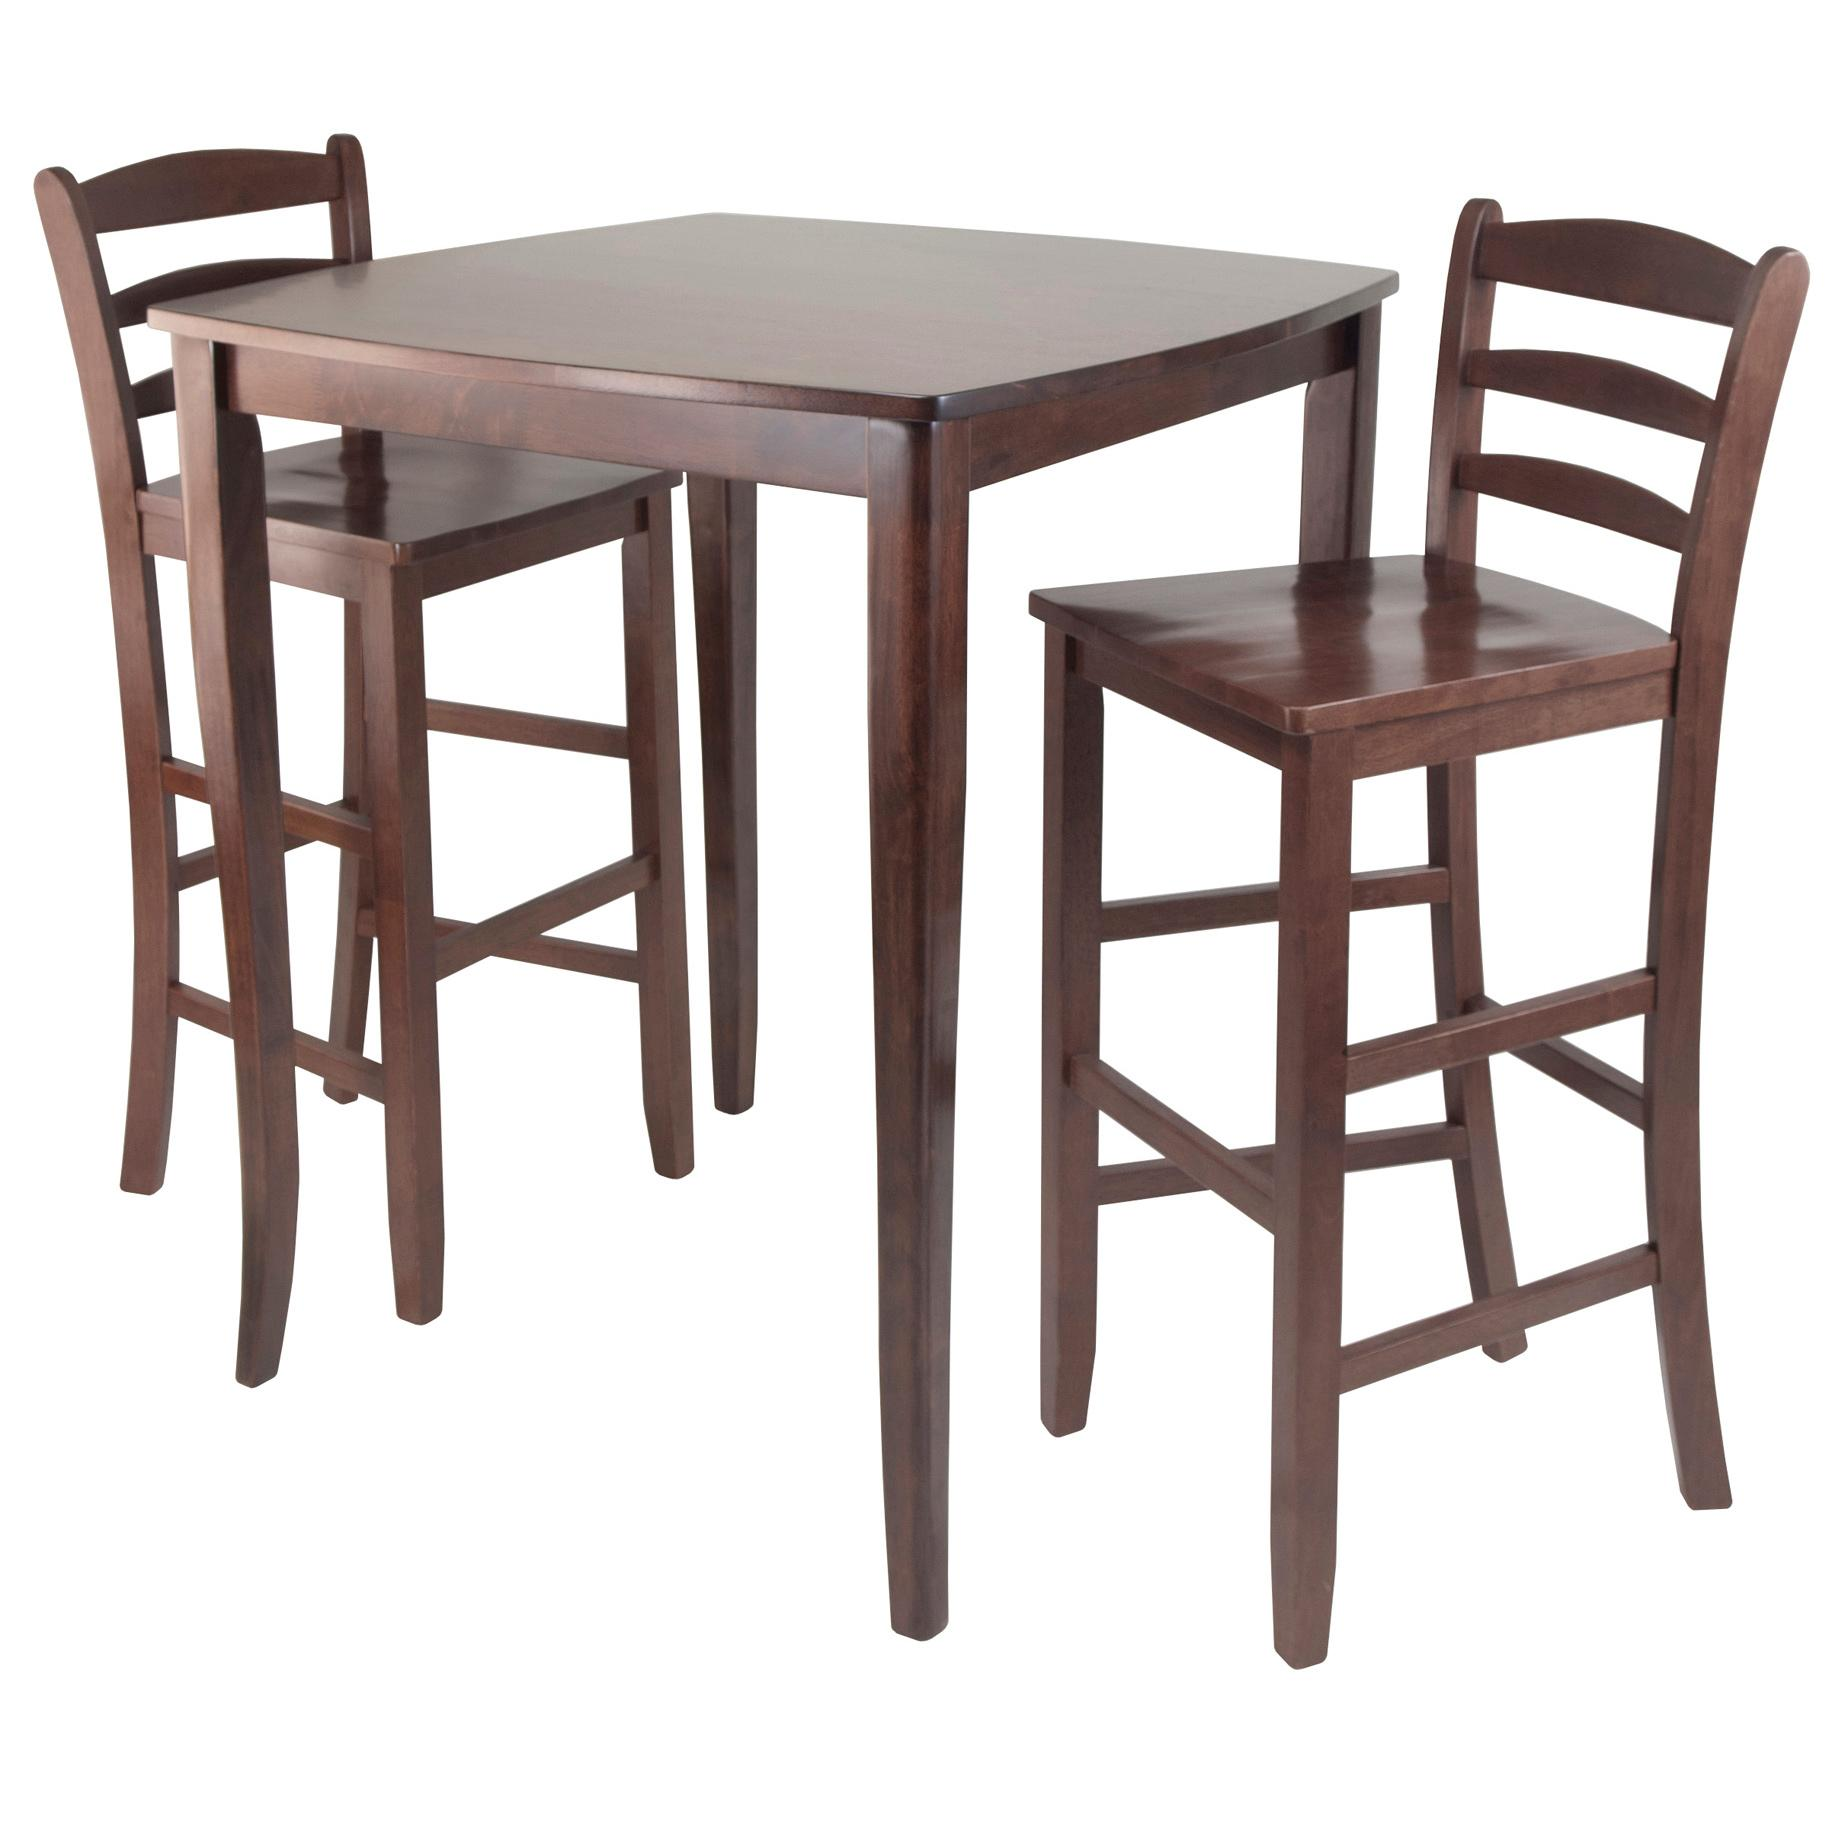 View larger  sc 1 st  Amazon.com : pub set dining table - pezcame.com